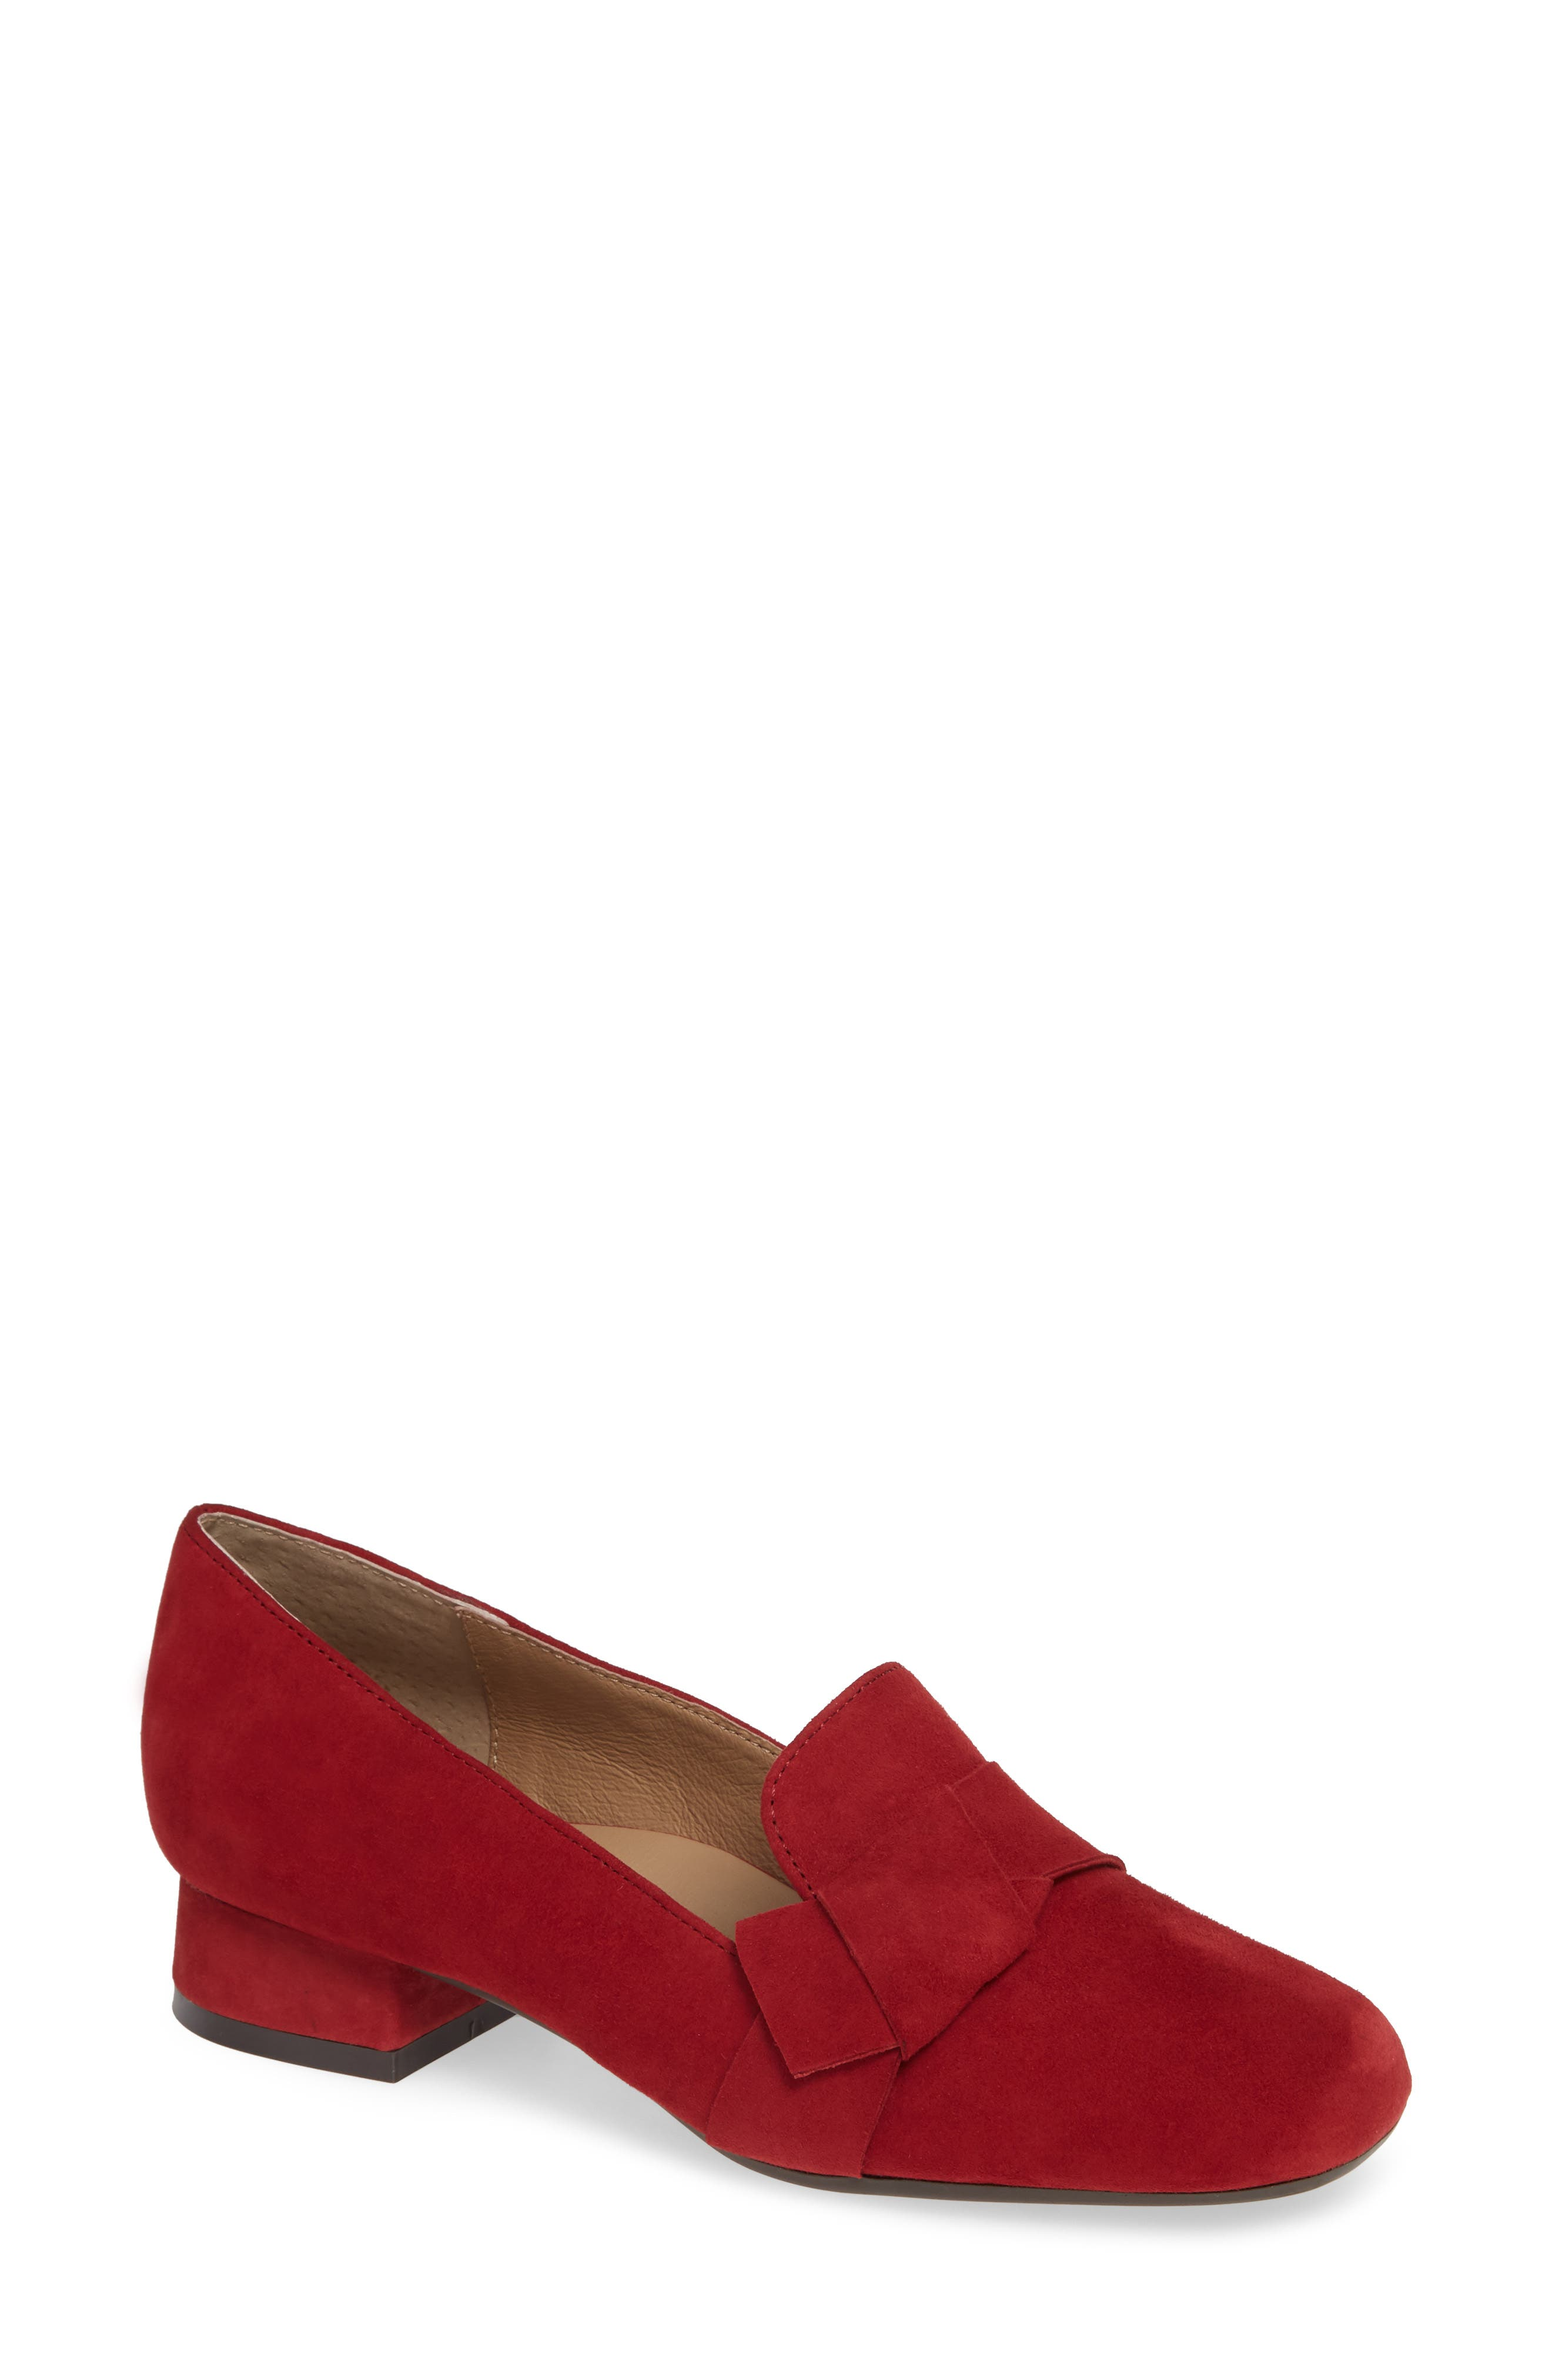 Bettye Muller Concepts Grand Pump- Red